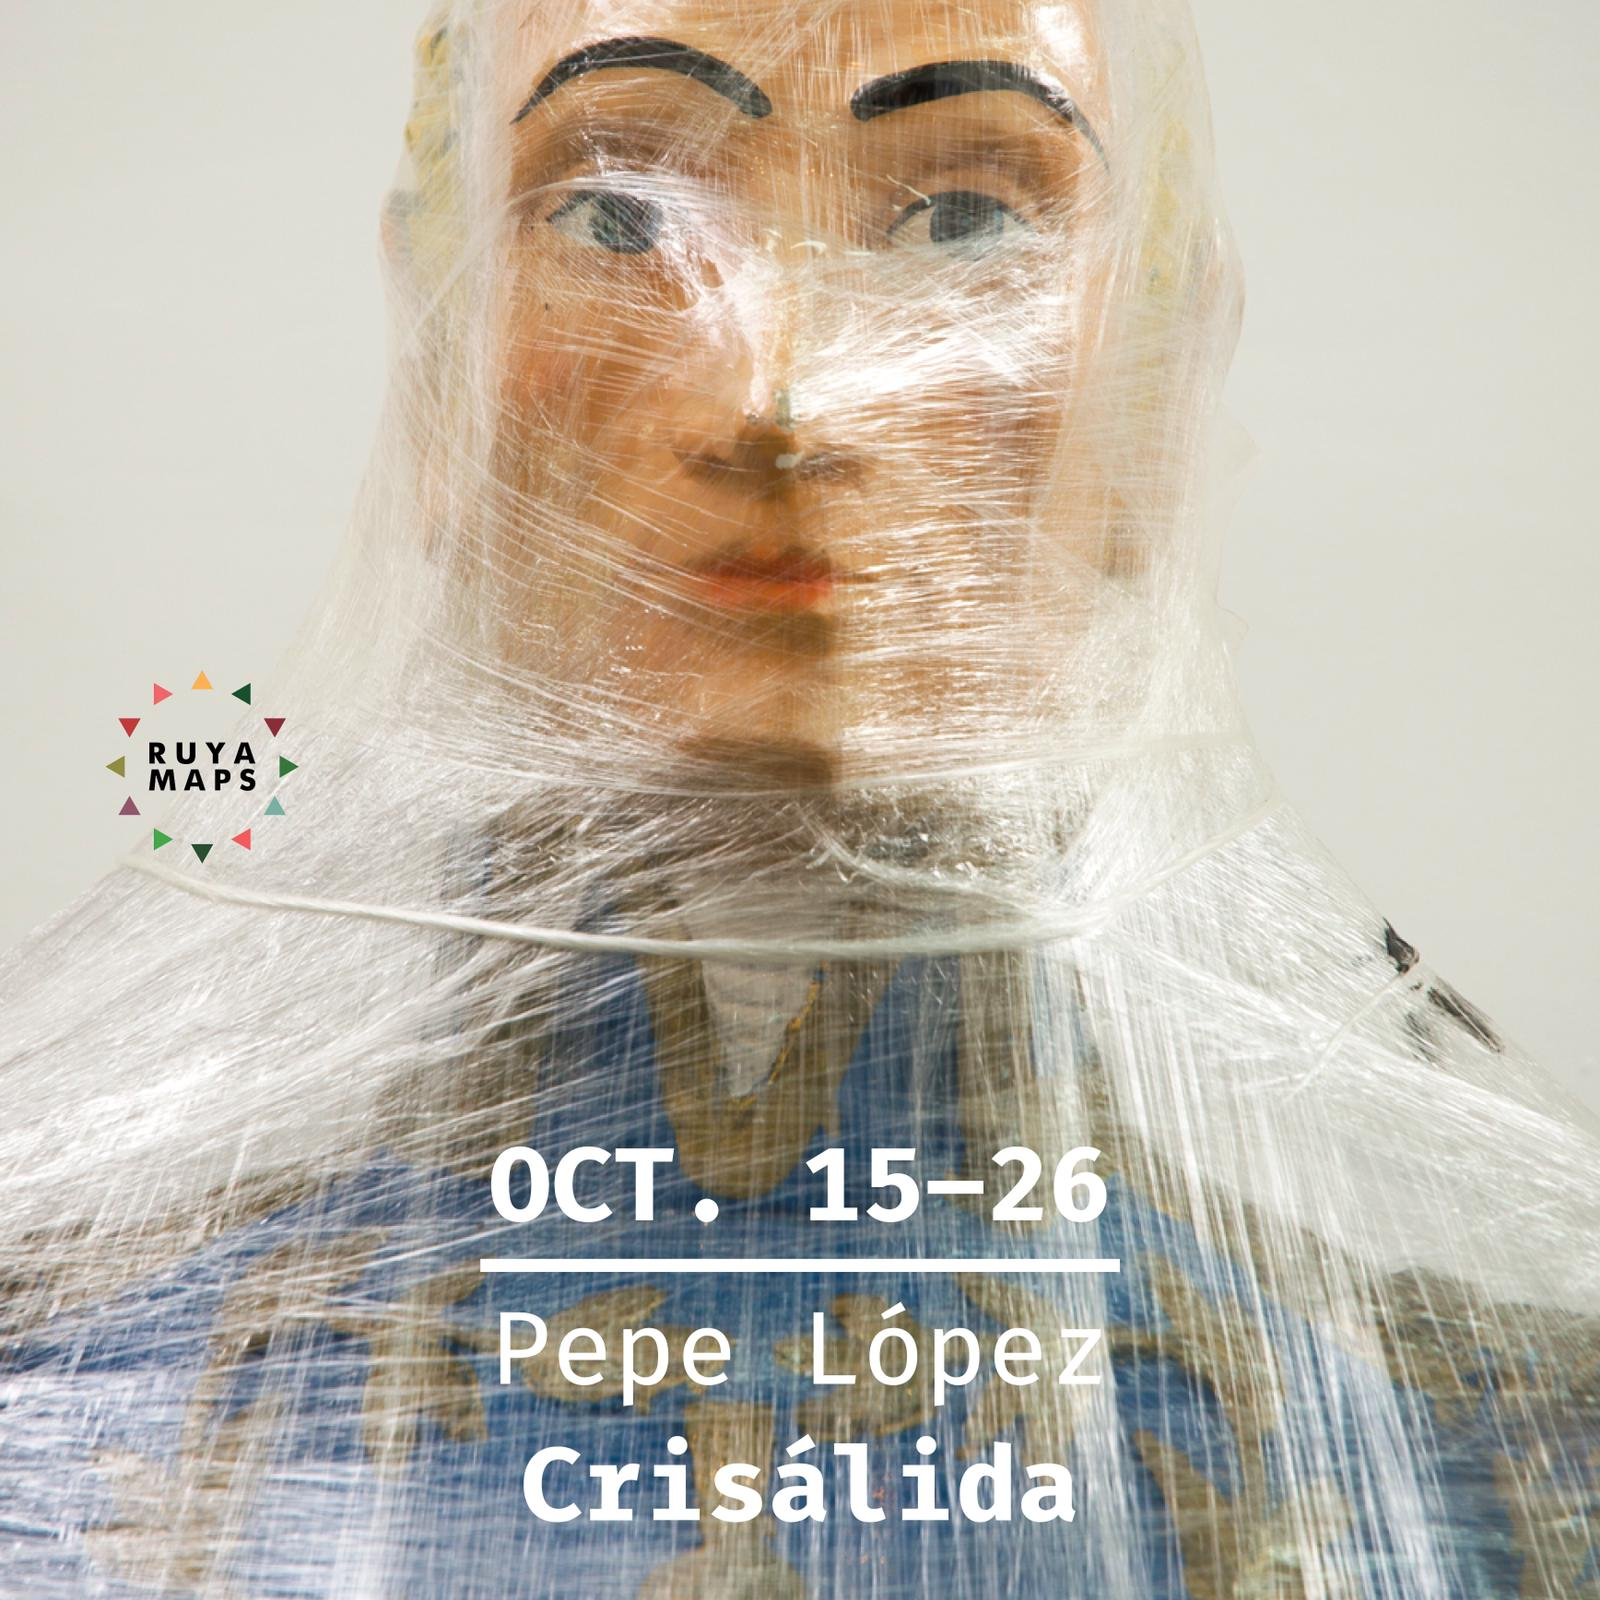 Pepe López: Crisalida - The Fitzrovia Chapel, London14 October – 26 October 2018RUYA MAPS' inaugural project will be an exhibition of work by Venezuelan artist Pepe López (b.1966).